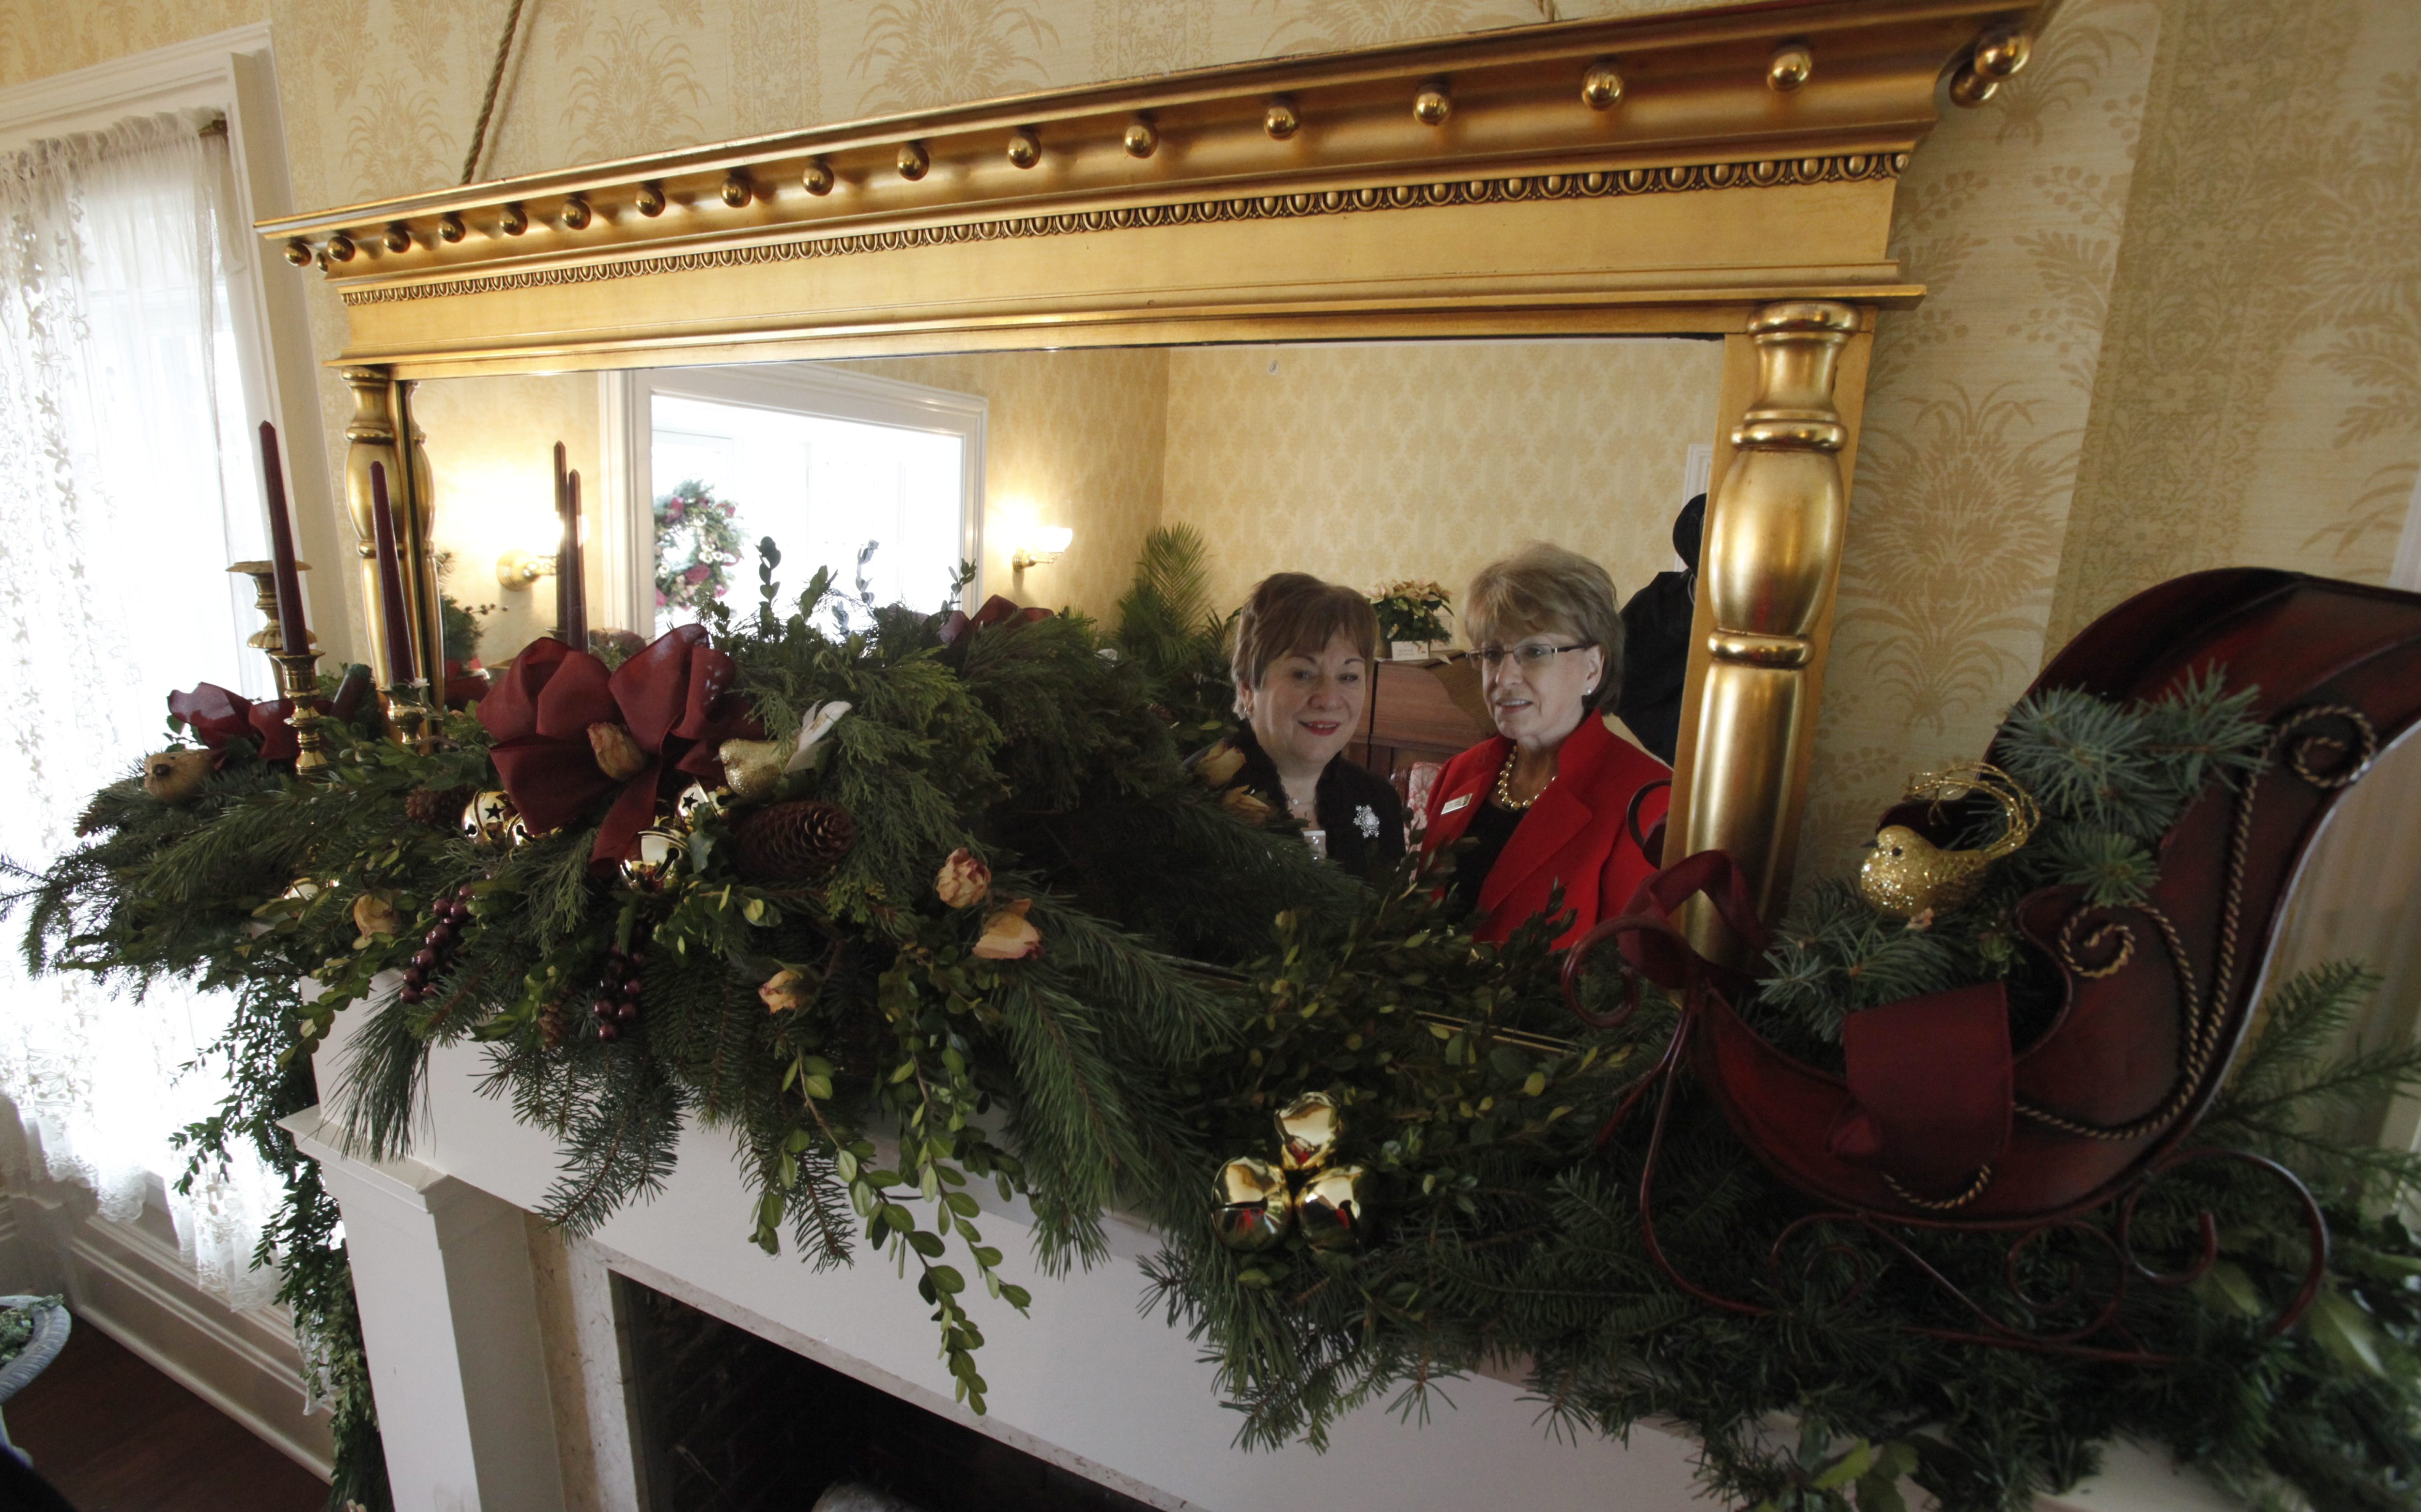 In the holiday spirit: Victorian Christmas kicks off Dec. 3 at the Theodore Roosevelt Inaugural Site, 641 Delaware Ave., with a wine tasting, silent auction and other festive events.